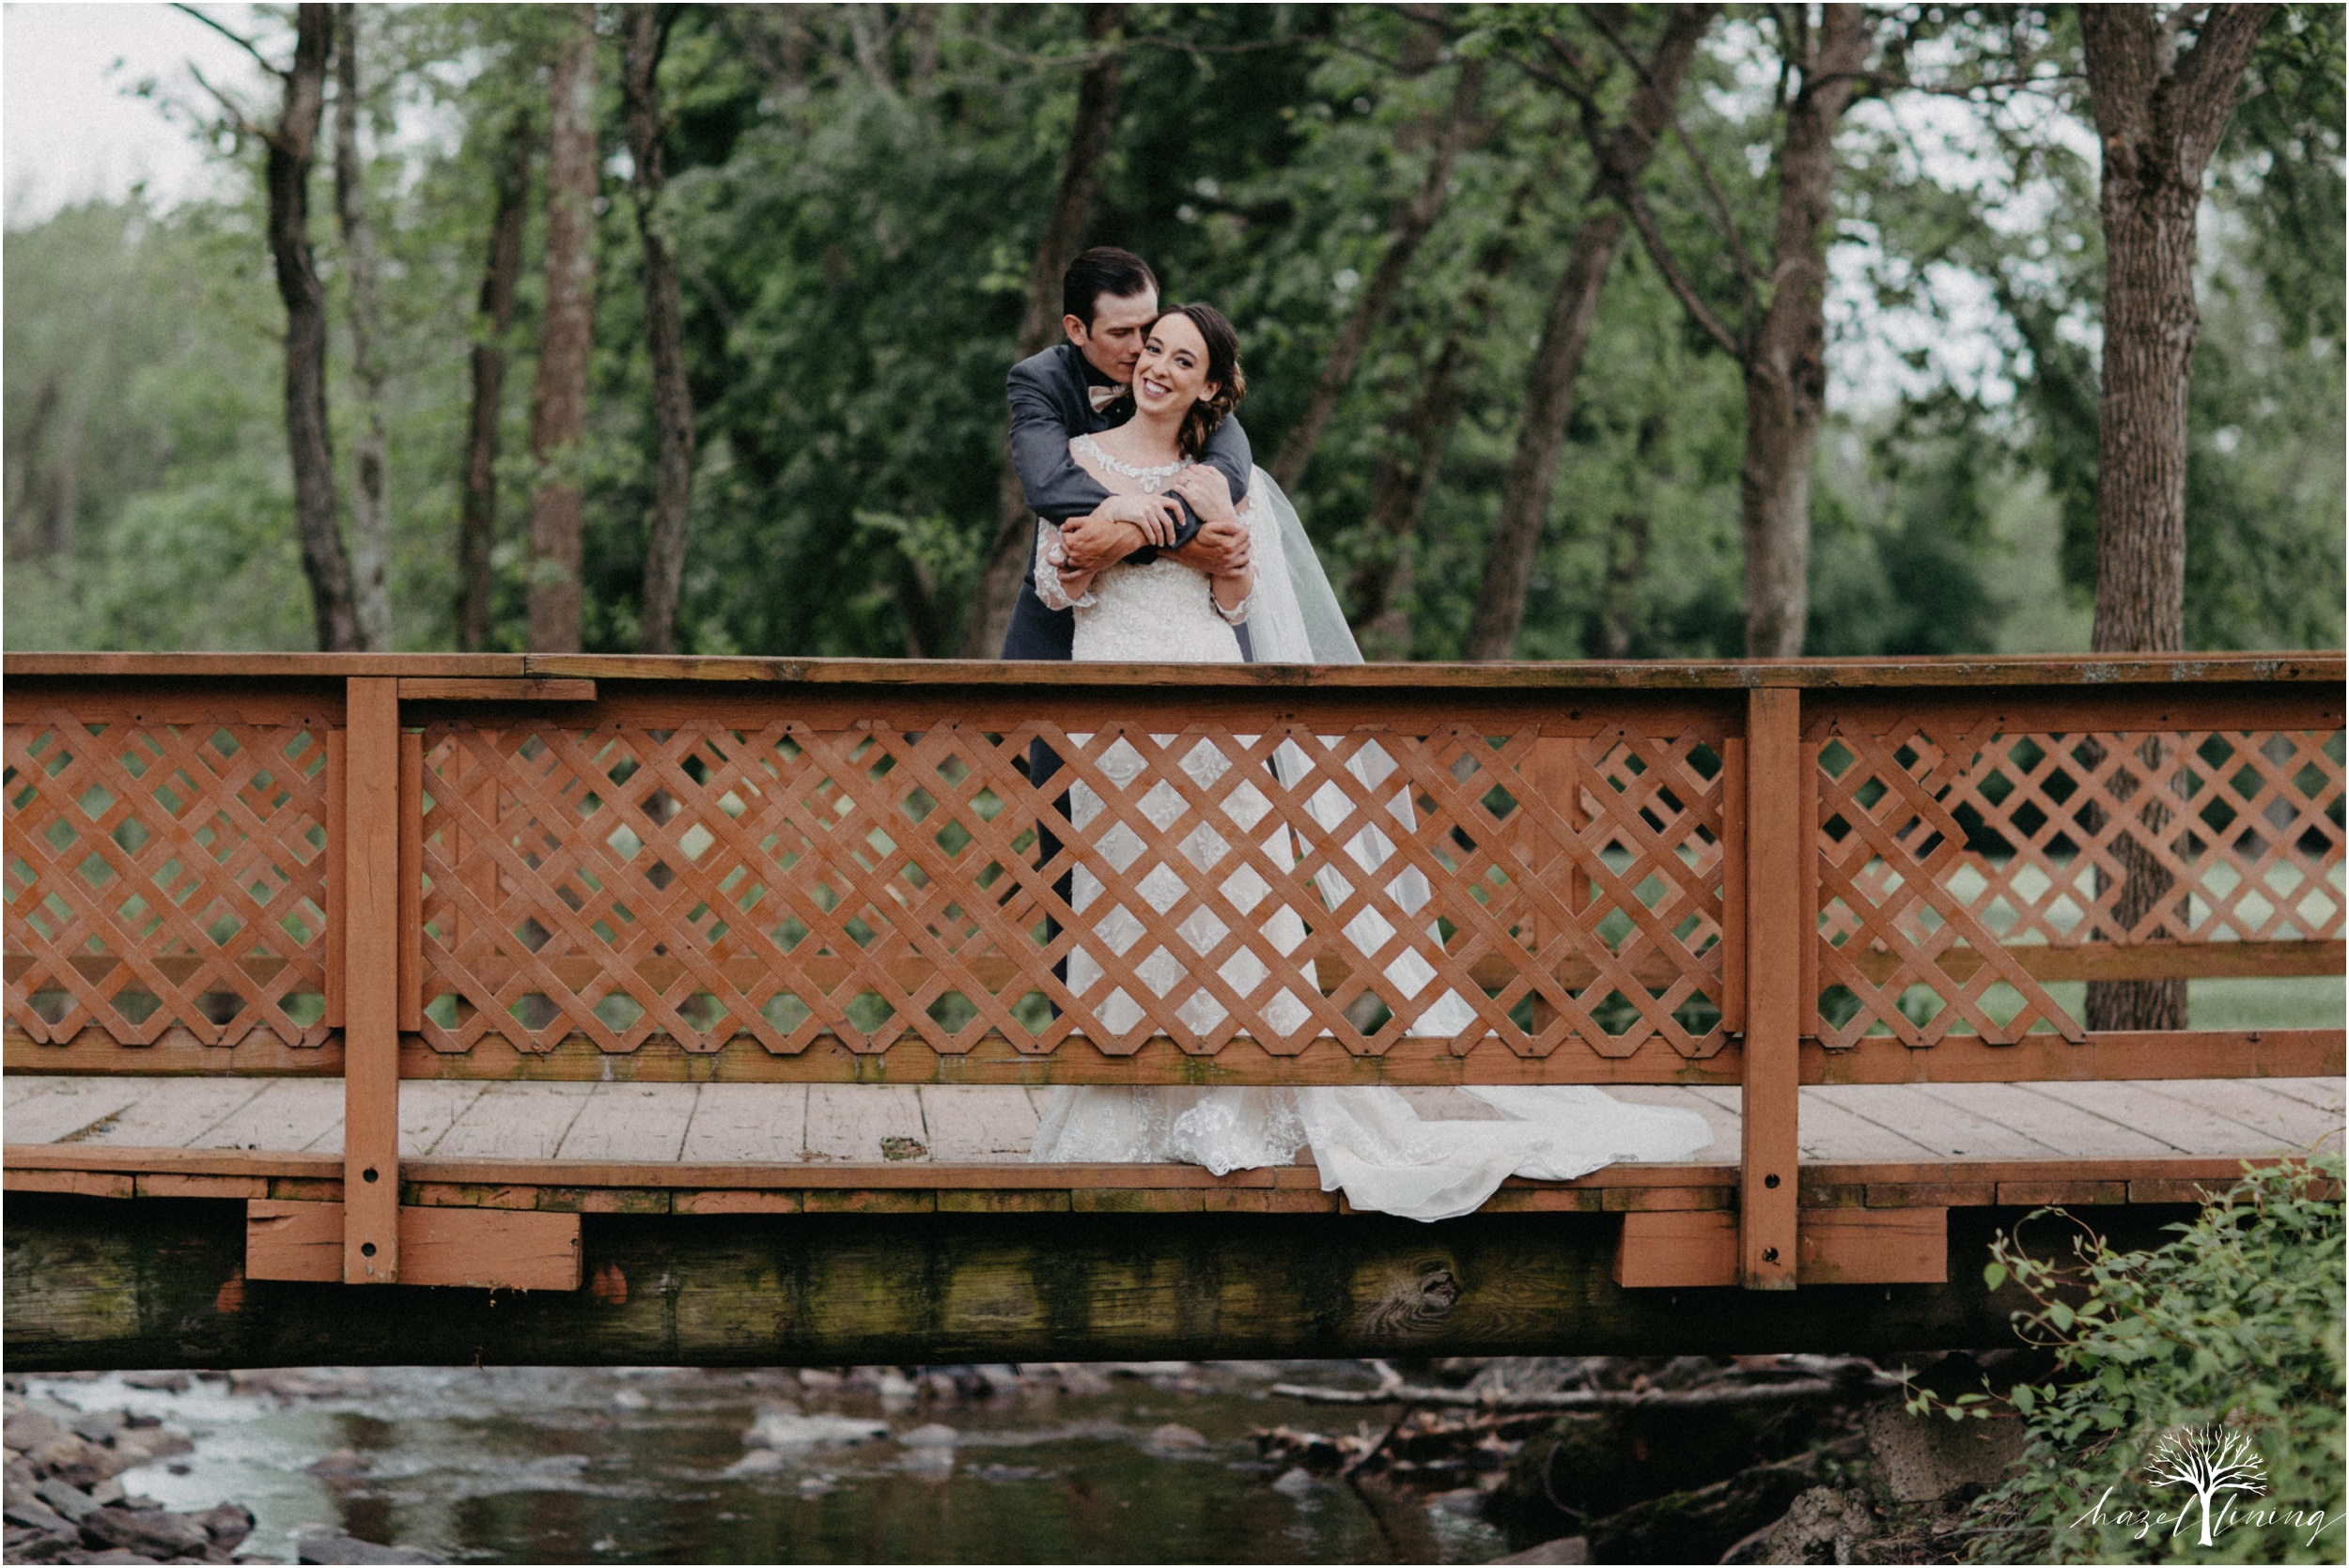 liz-blair-loft-at-sweetwater-cc-pennsburg-pa-spring-wedding-hazel-lining-photography-destination-elopement-wedding-engagement-photography-year-in-review_0154.jpg